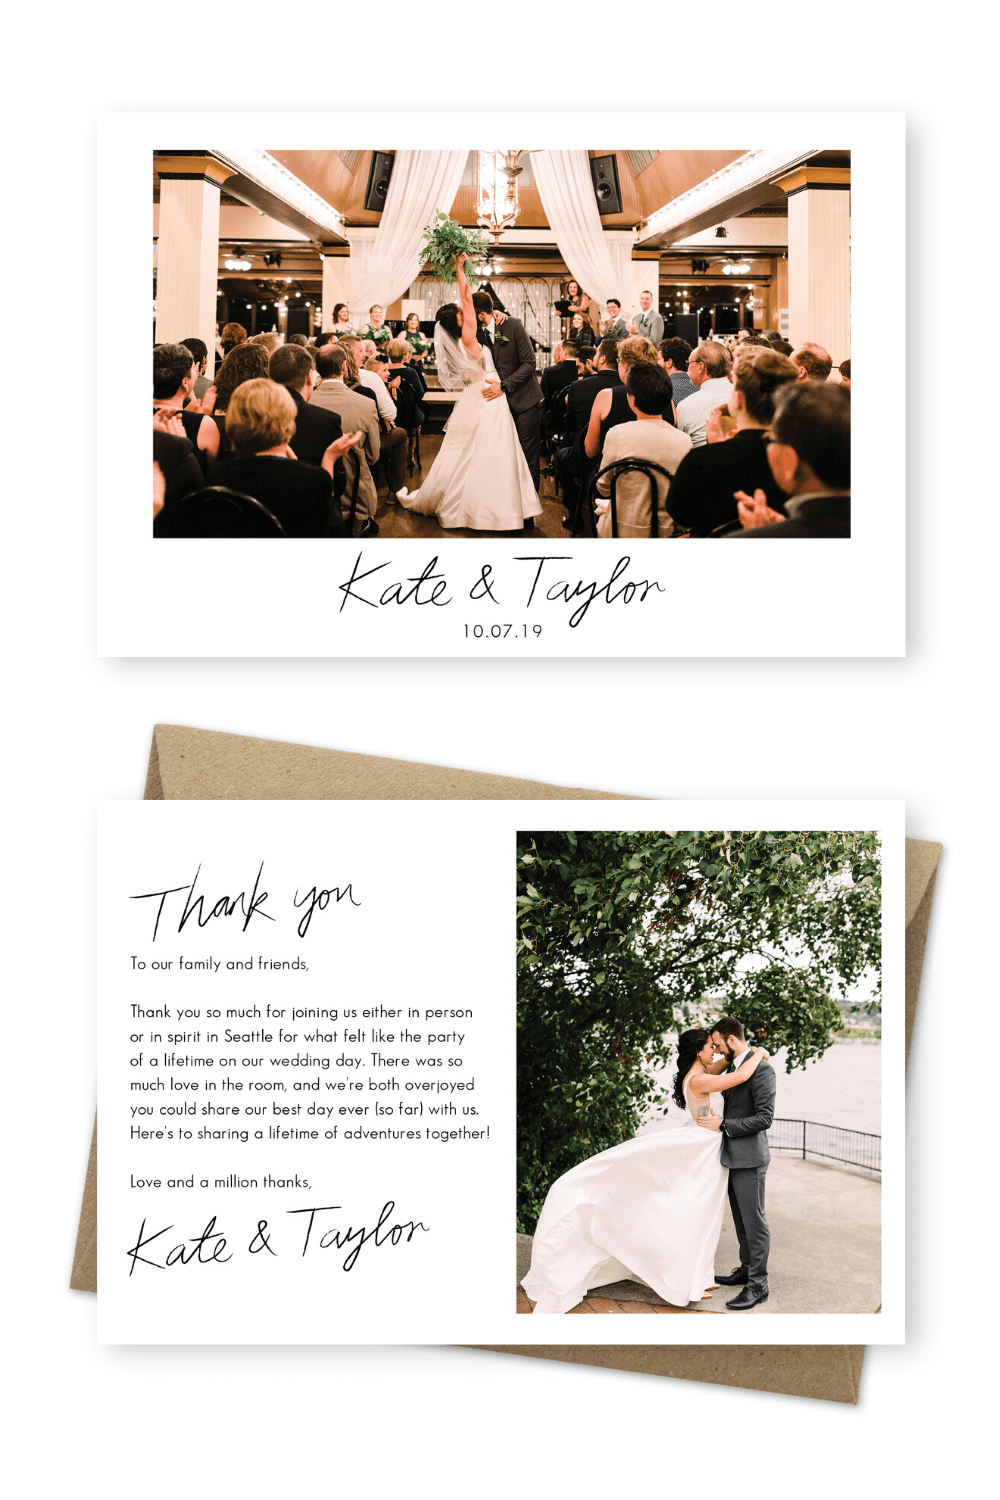 How To Write A Wedding Thank You Card That Your Guests Will Love Wedding Thank You Messages Thank You Card Wording Wedding Thank You Cards Wording